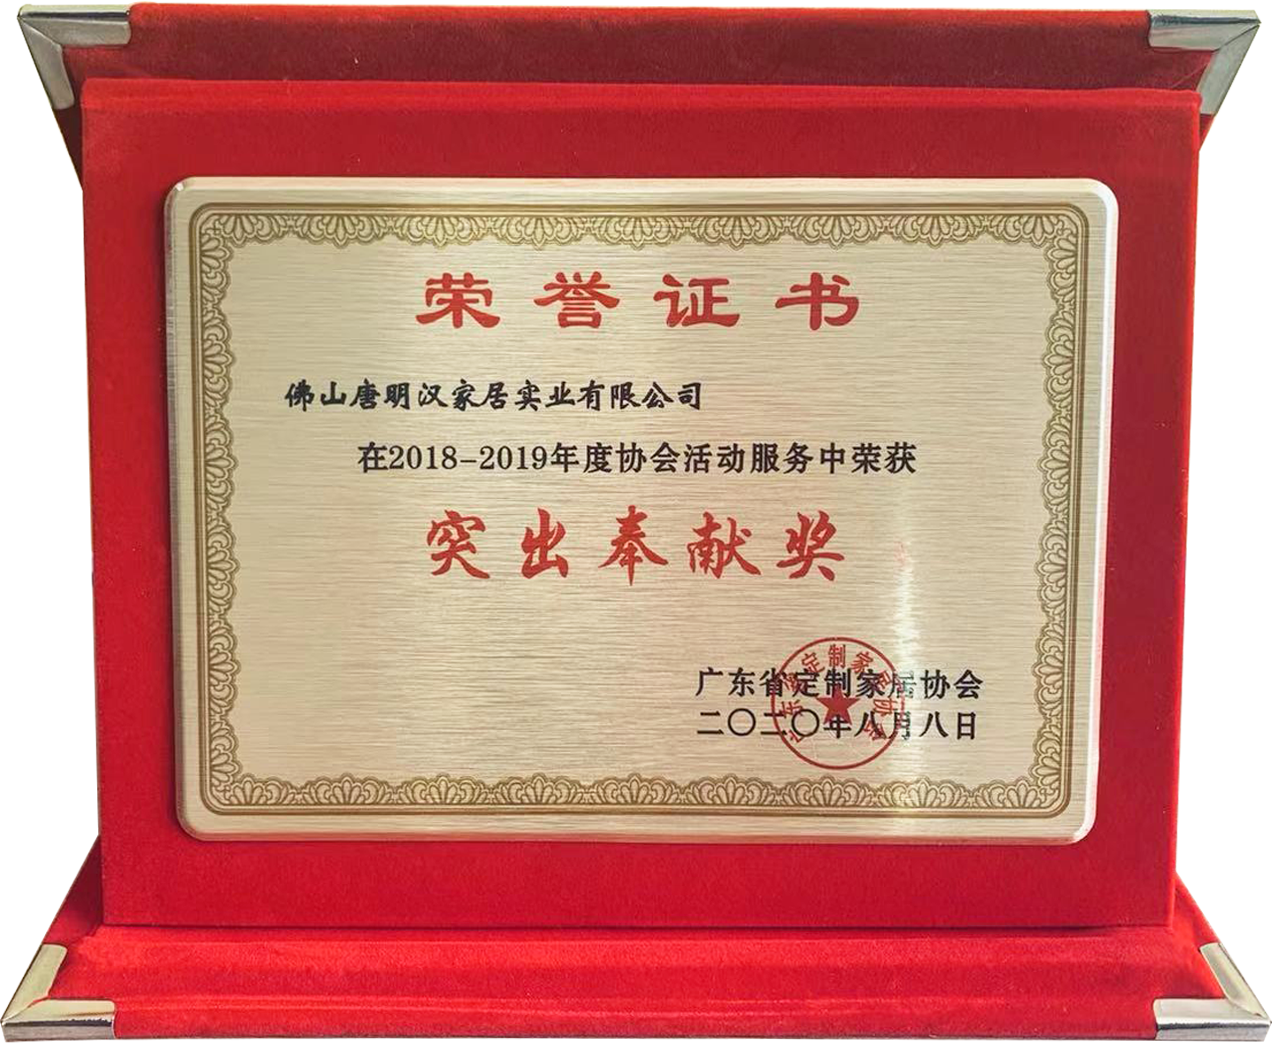 Outstanding service award of the customized Association